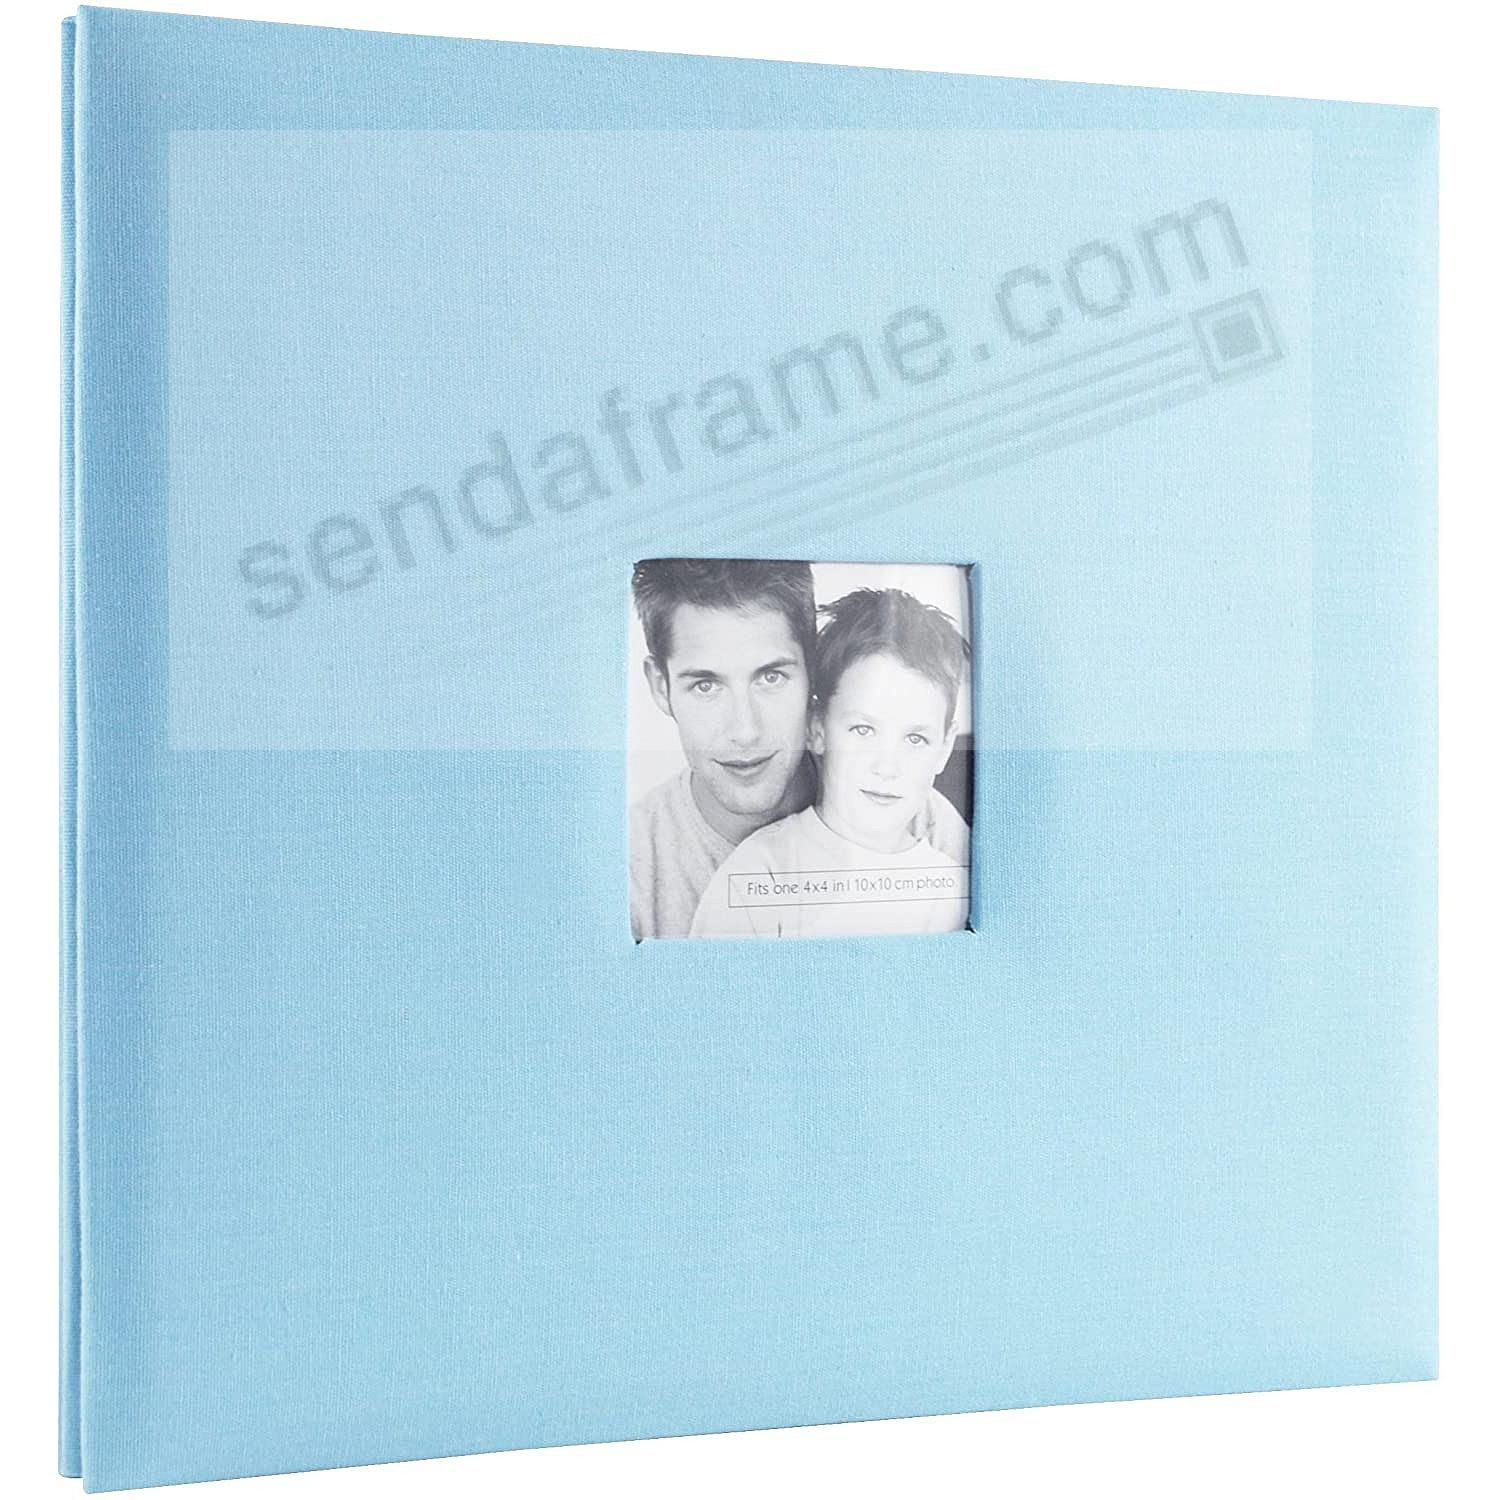 SKY-BLUE Fabric Post-Bound Album w/12x12 pocket pages